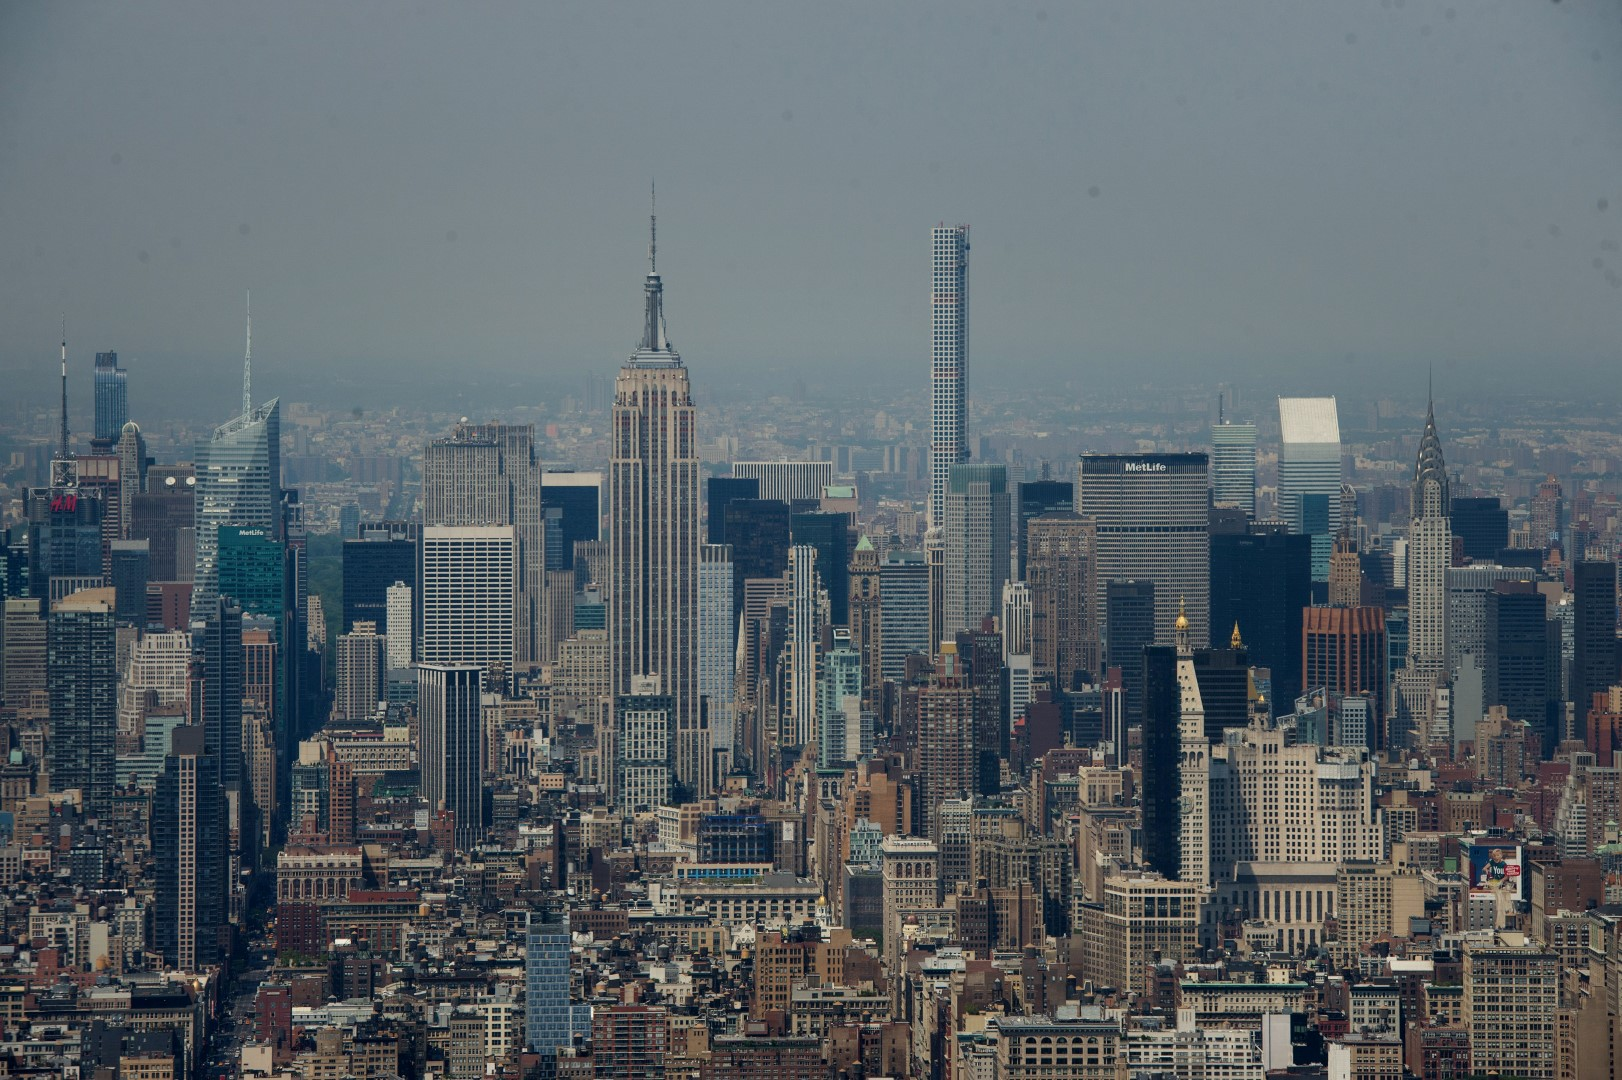 The Empire State, left, and Chrslyer buildings standing in the Manhattan skyline are seen from One World Observatory at One World Trade Center in New York, U.S., on Tuesday, May 26, 2015. One World Observatory, the viewing deck at Manhattan's 1 World Trade Center, opens Friday, giving tourists New York vistas that were lost on 9/11 and helping cover the cost of the most expensive building ever. Photographer: Craig Warga/Bloomberg